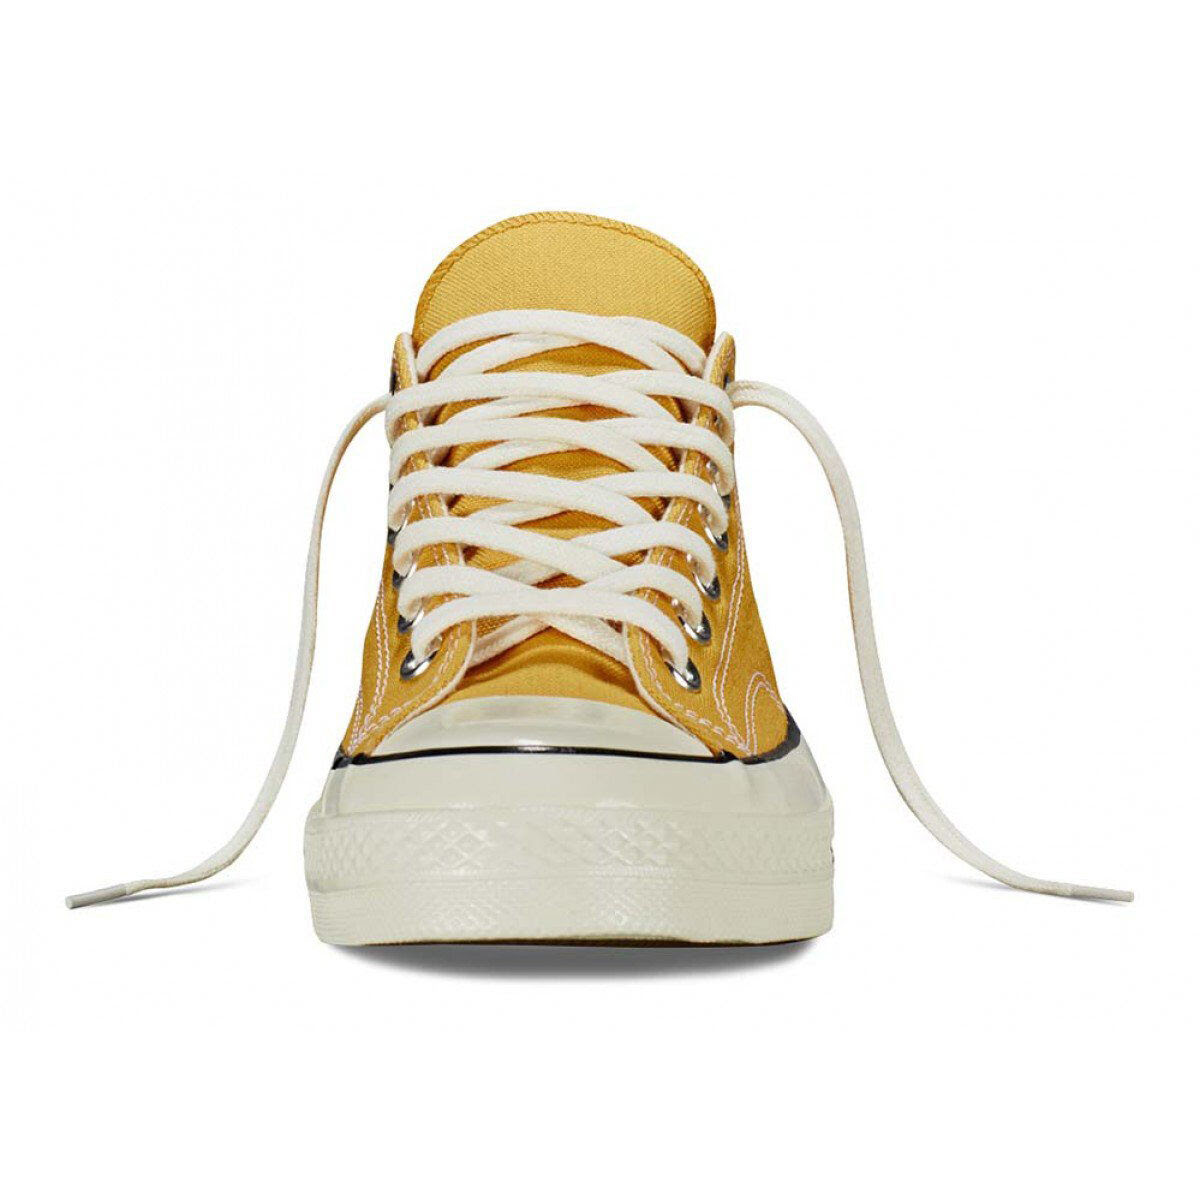 Converse Chuck Taylor All Star Low 1970s Sunflower Yellow ...